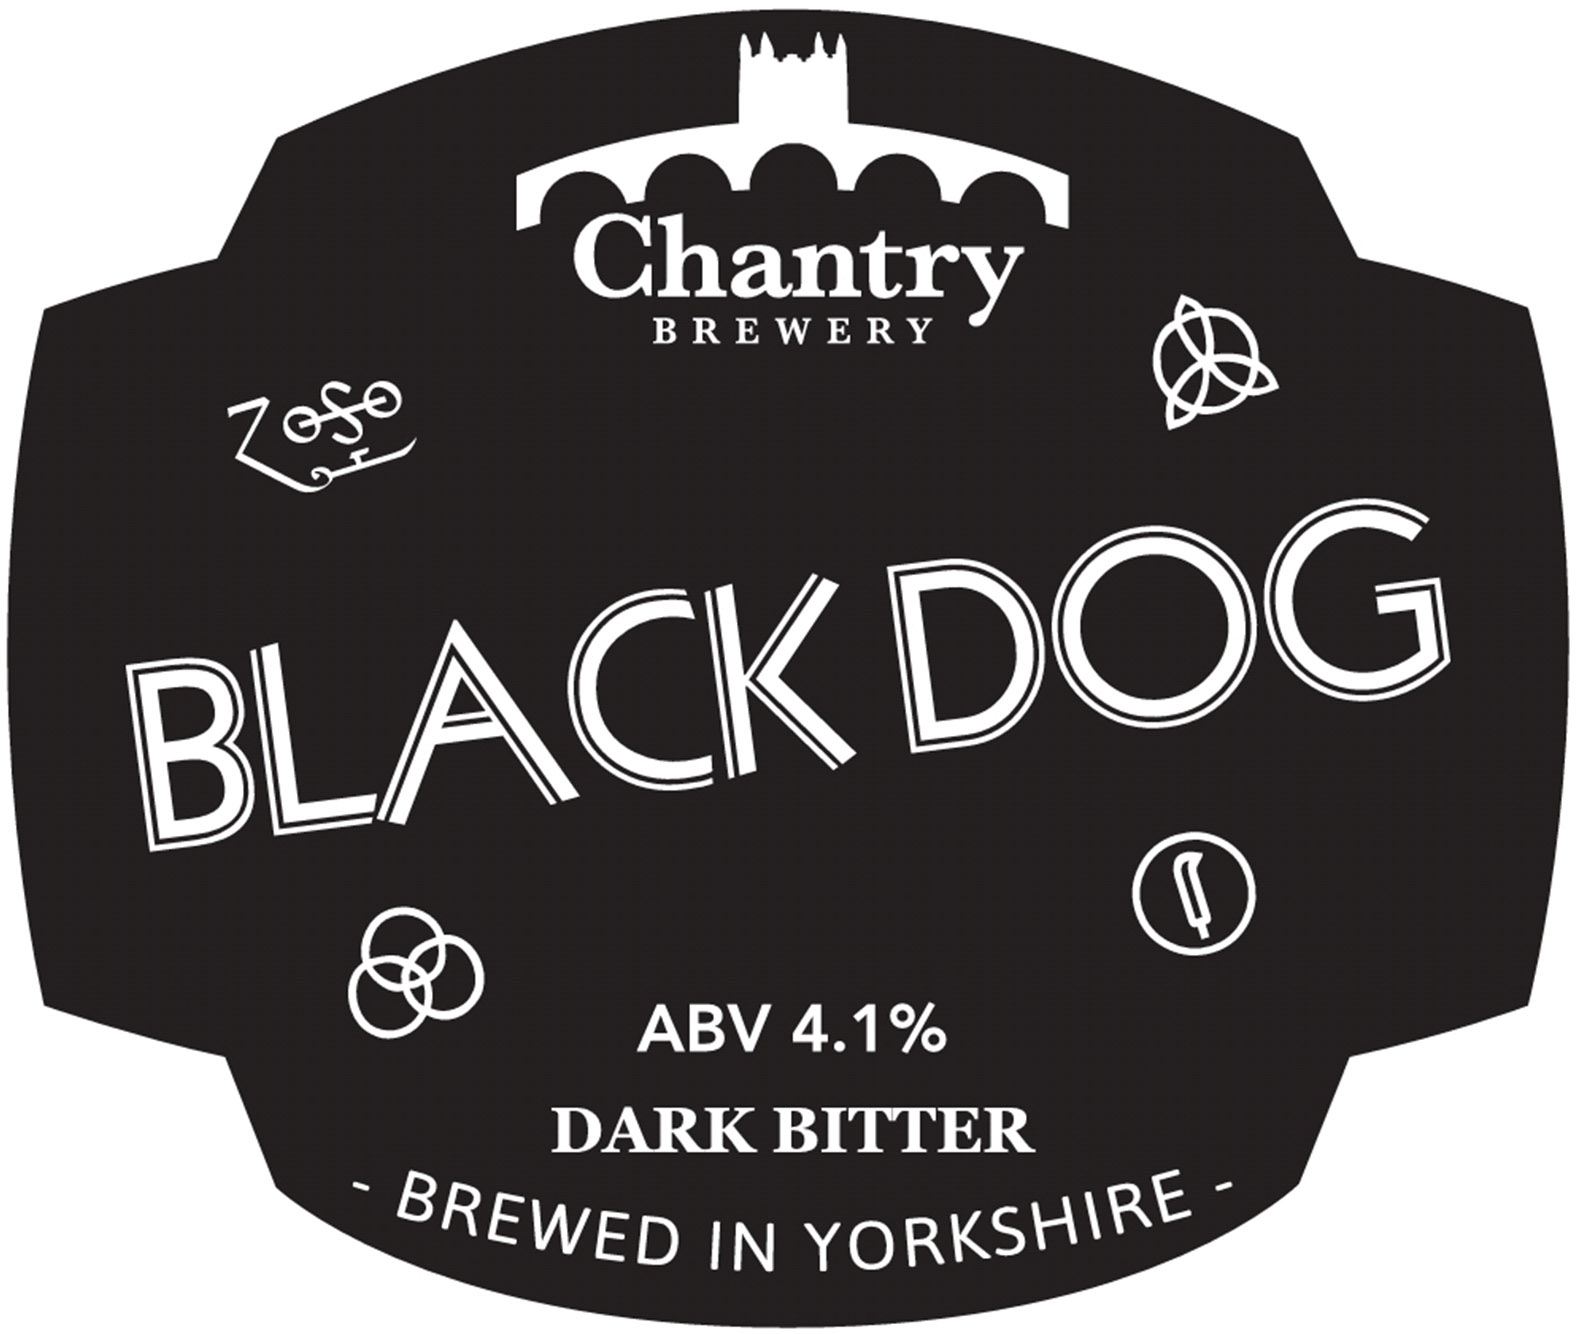 Chantry Brewery Black Dog